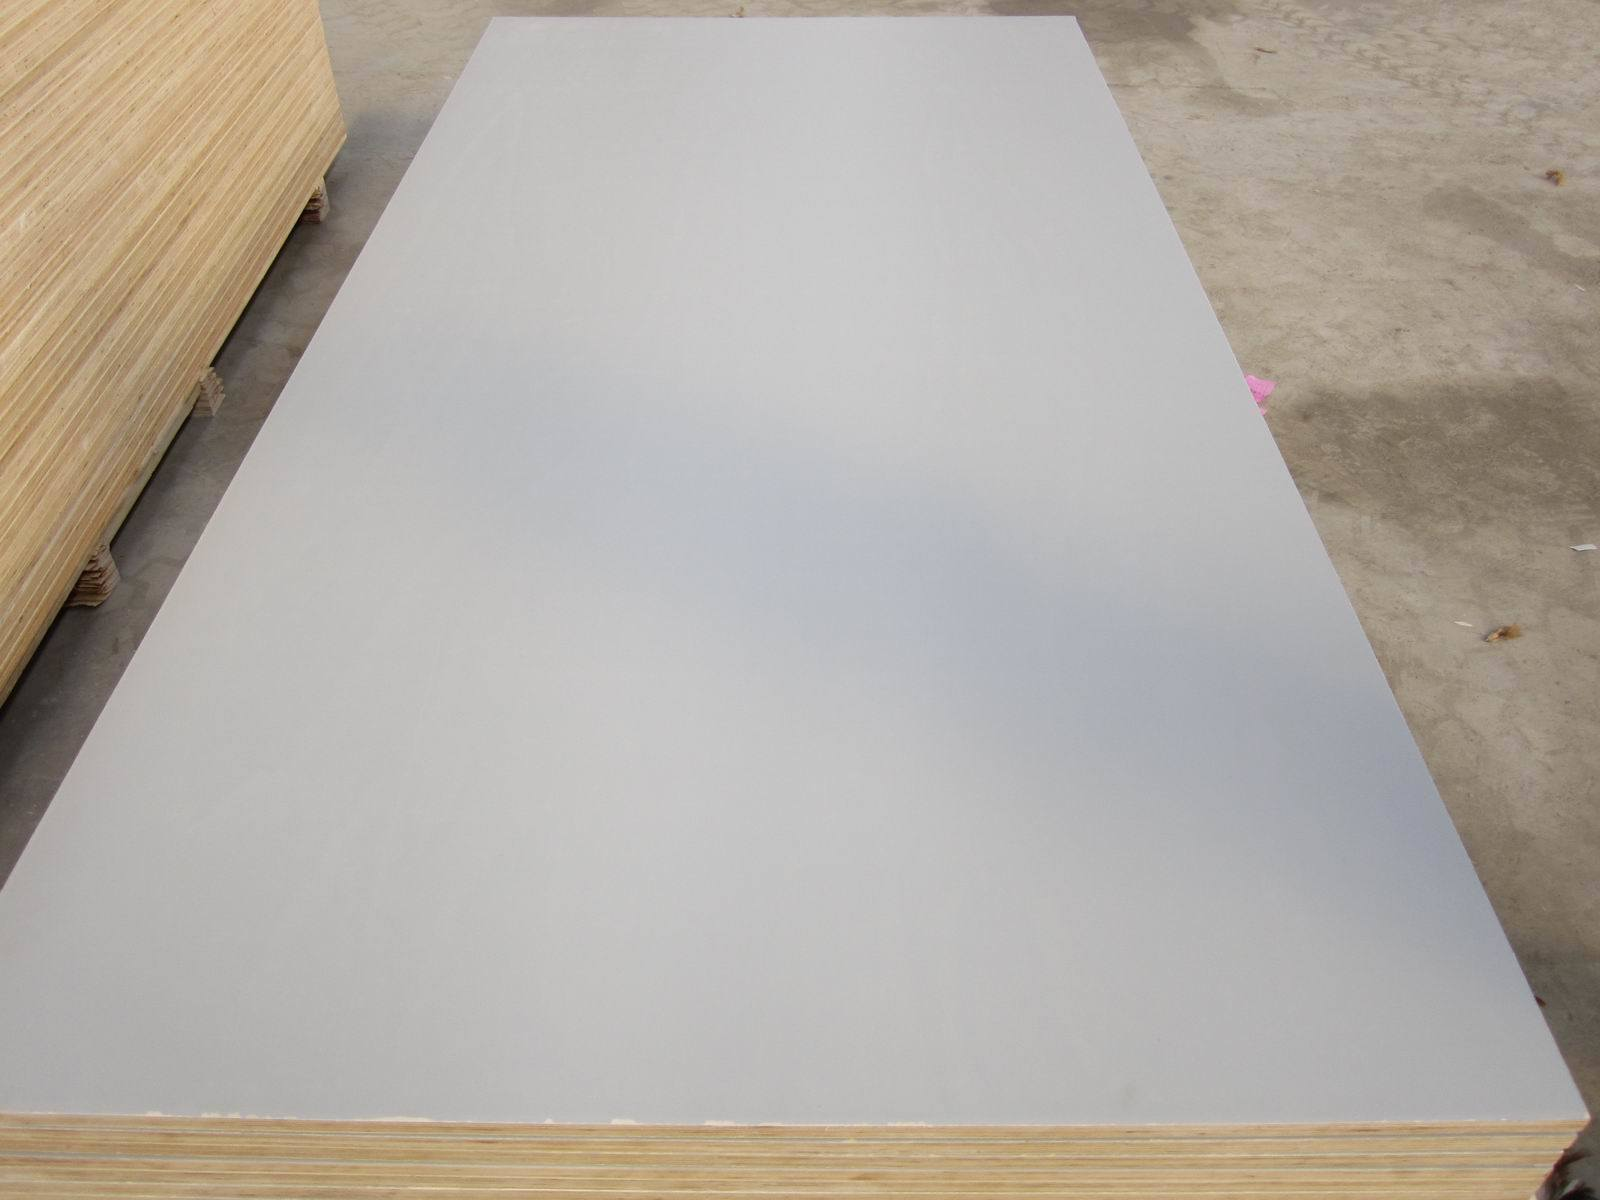 Hight Quality Melamine MDF for Furniture, Furniture MDF, Decorative MDF, AA Grade MDF